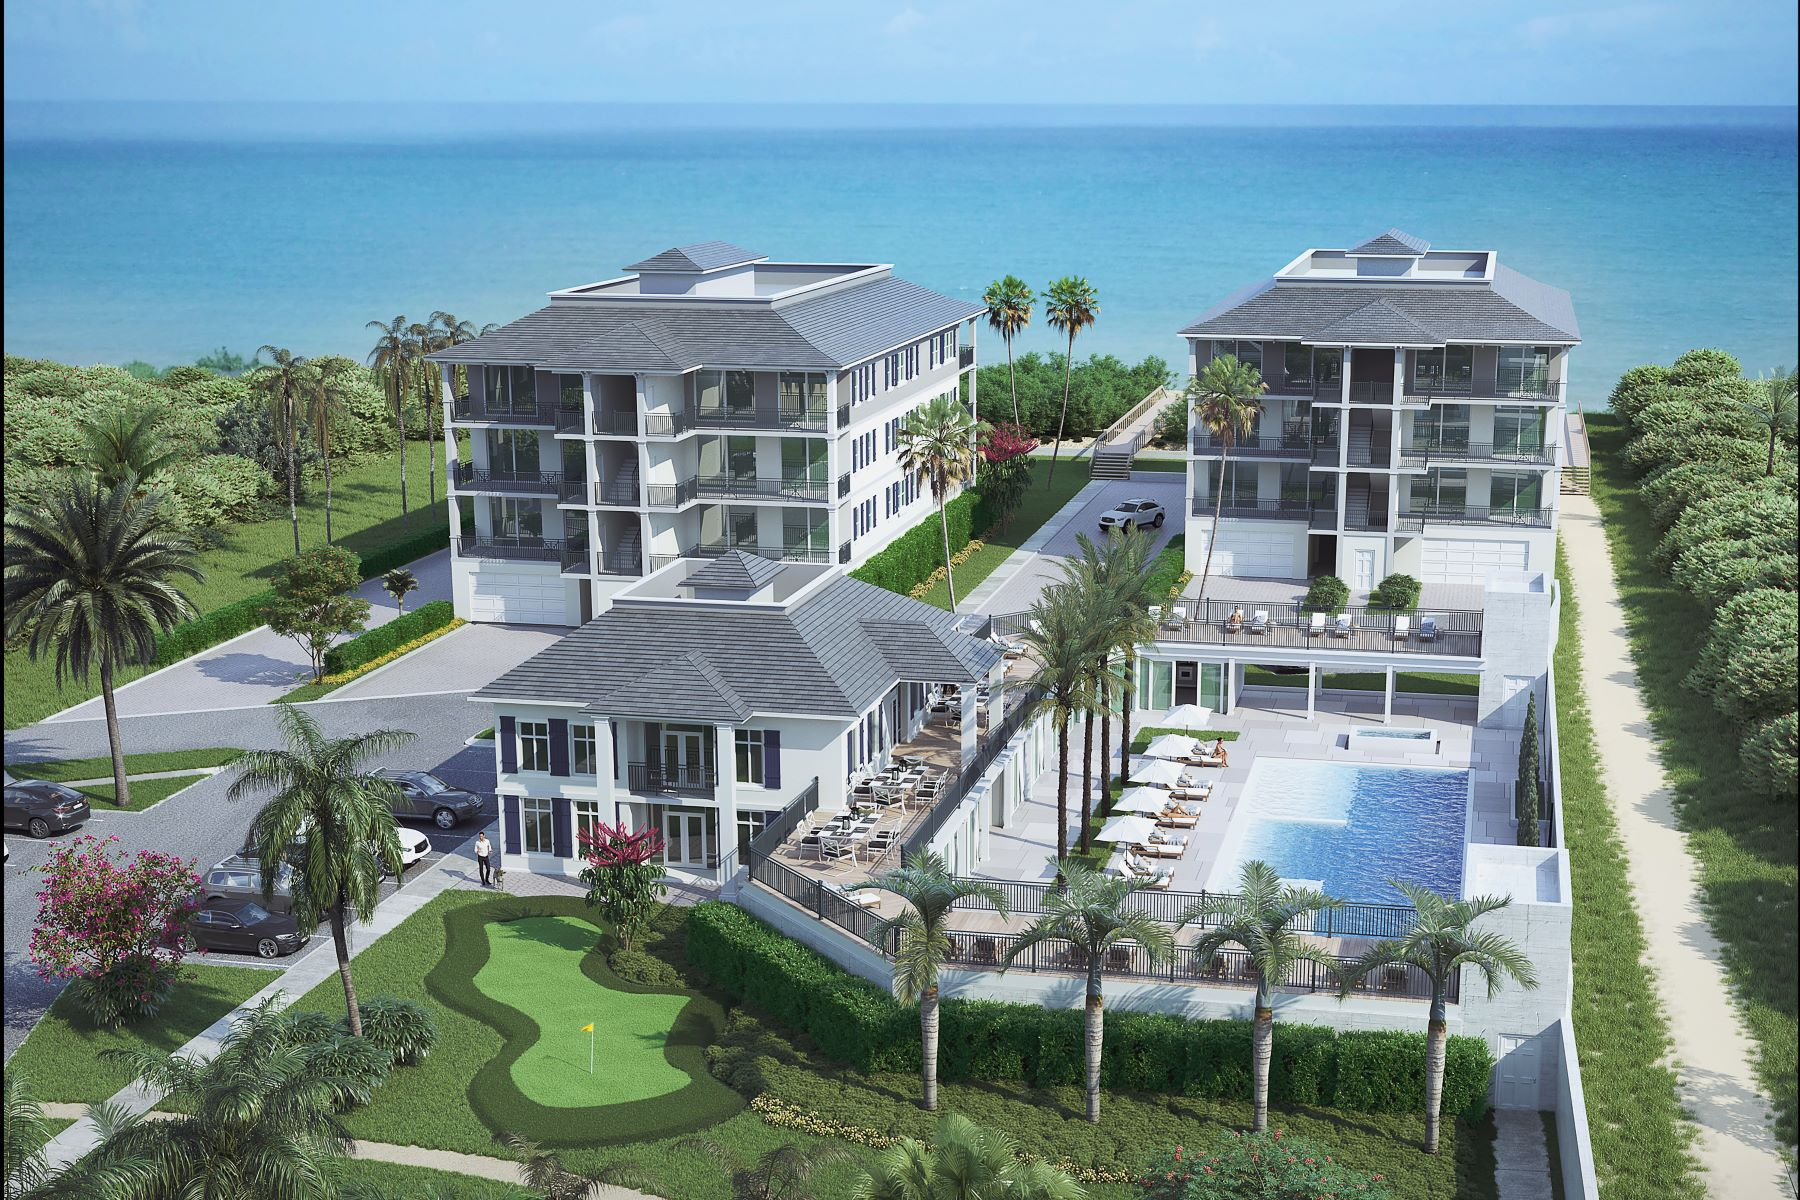 Property for Sale at Blue at 8050 8050 Highway A1A Tower 2 401 Vero Beach, Florida 32963 United States